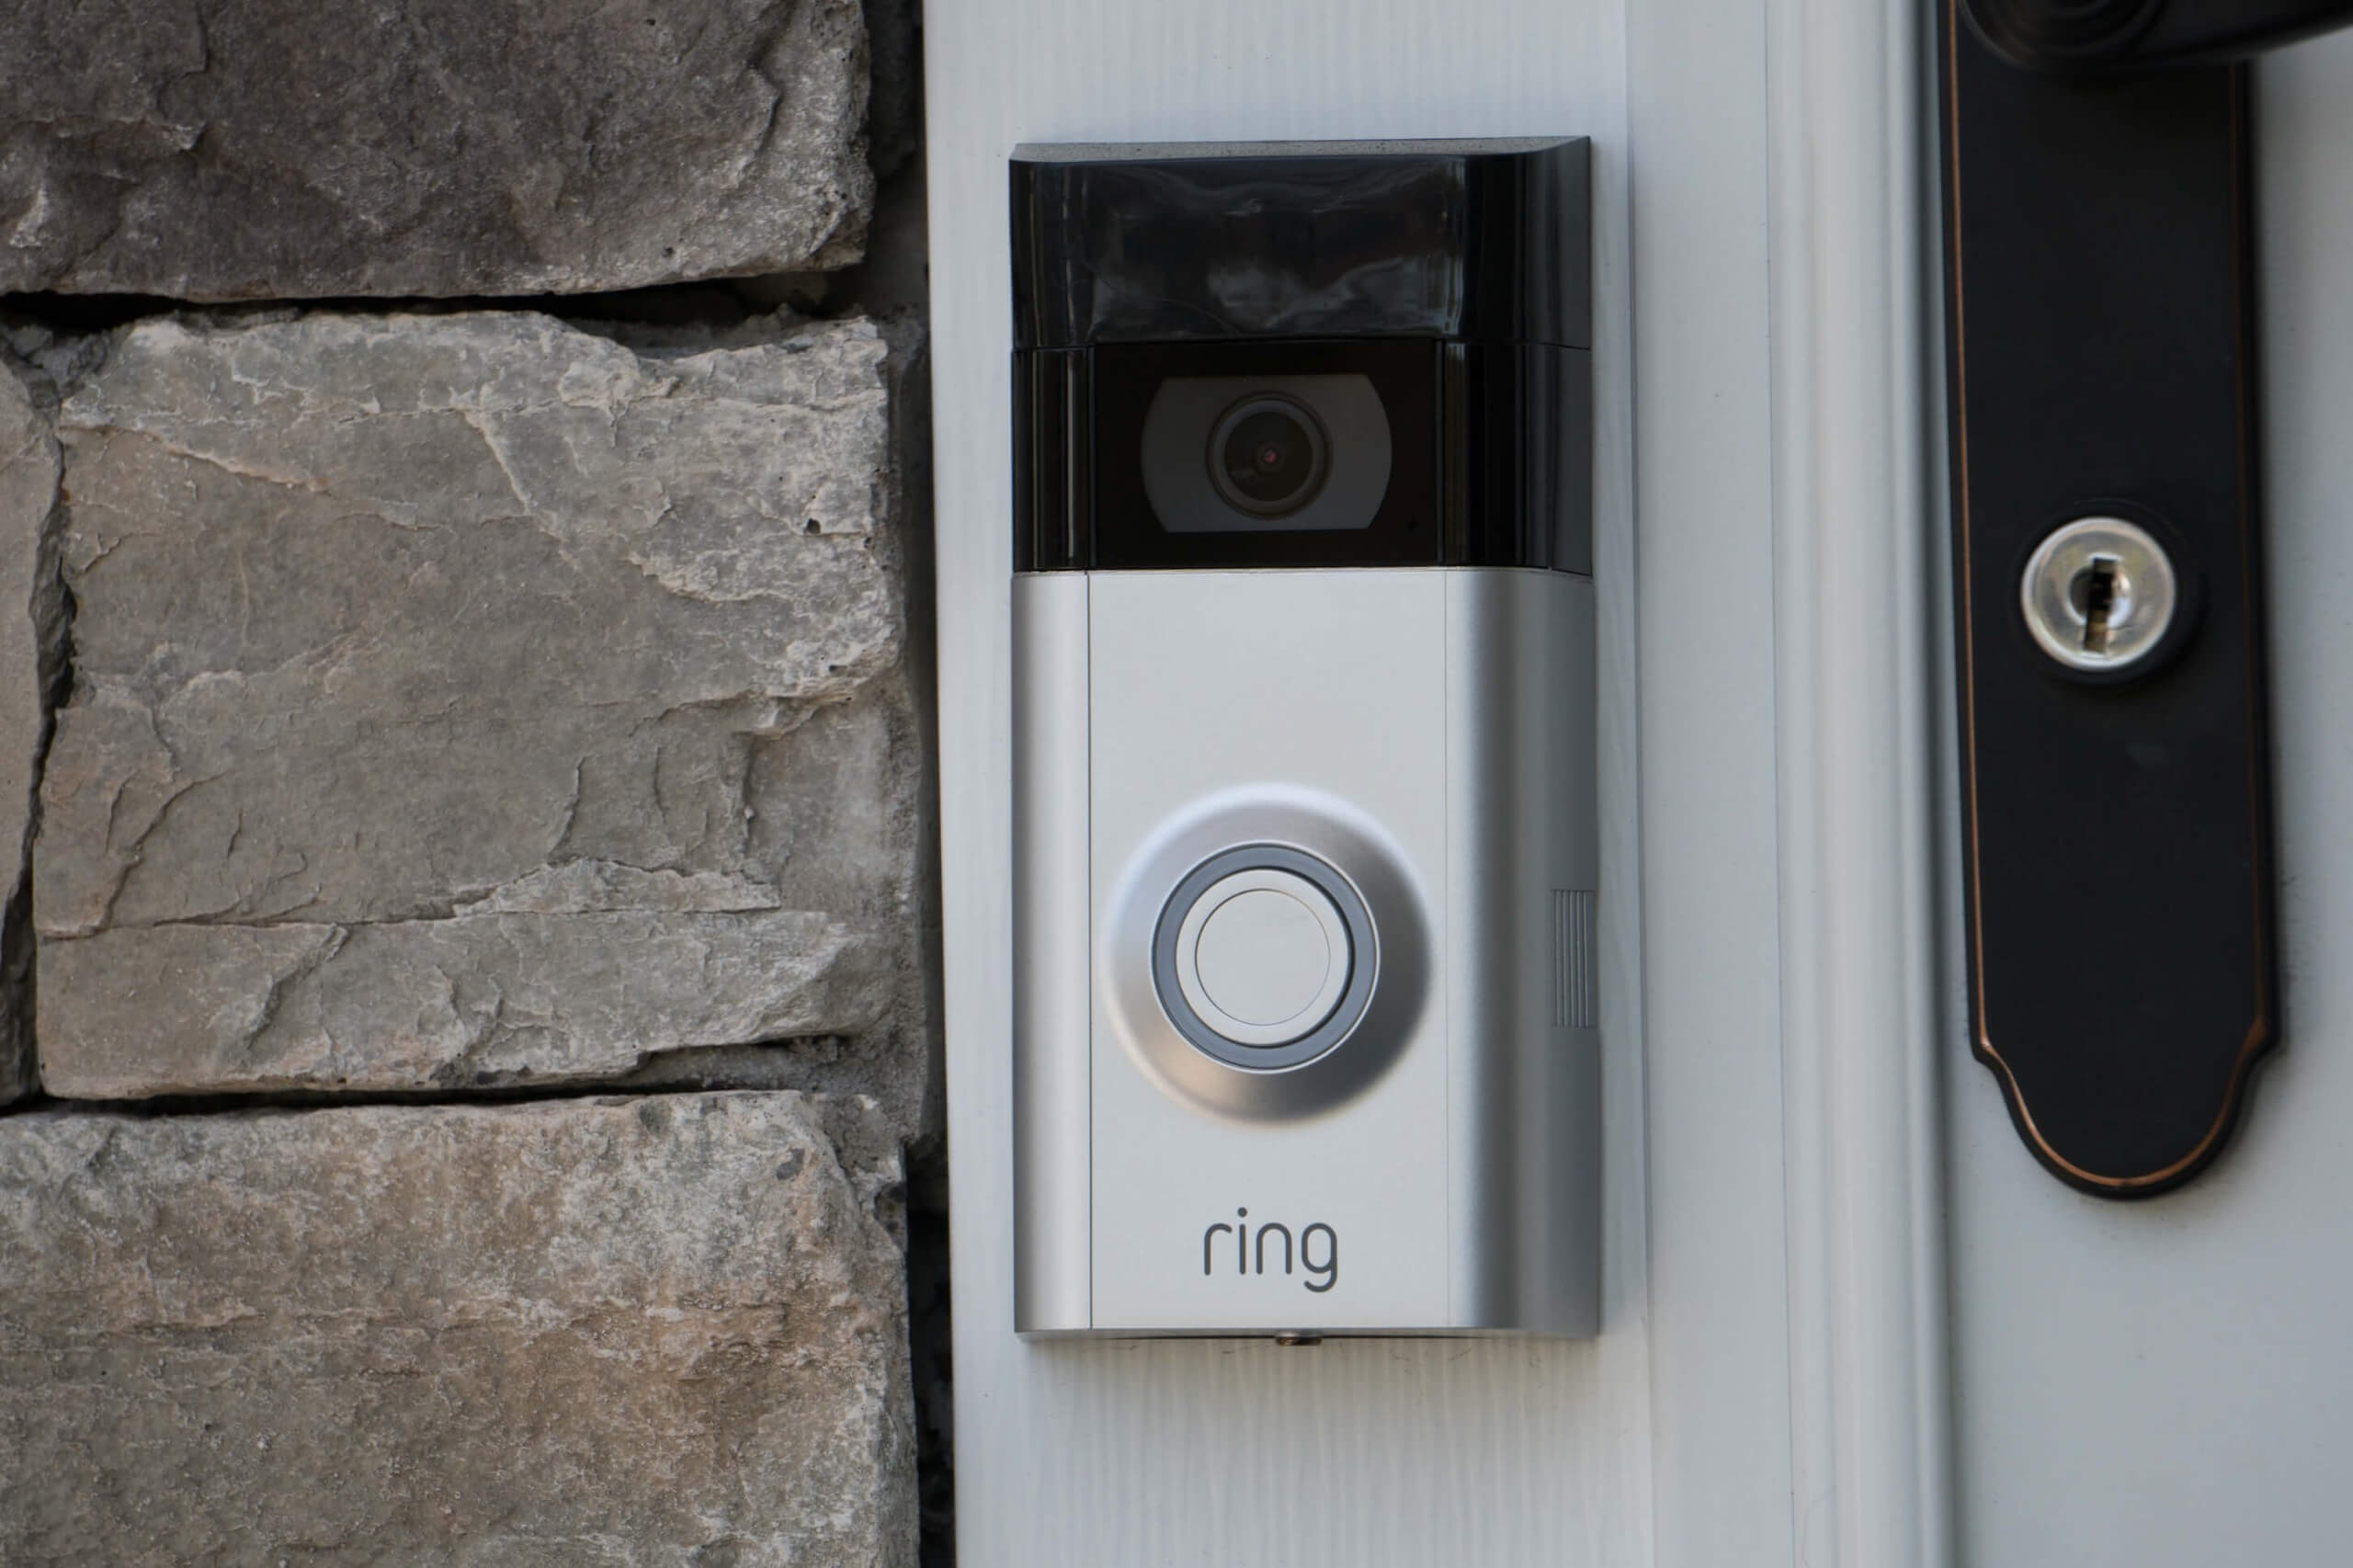 Police may now keep Ring security videos, Amazon says